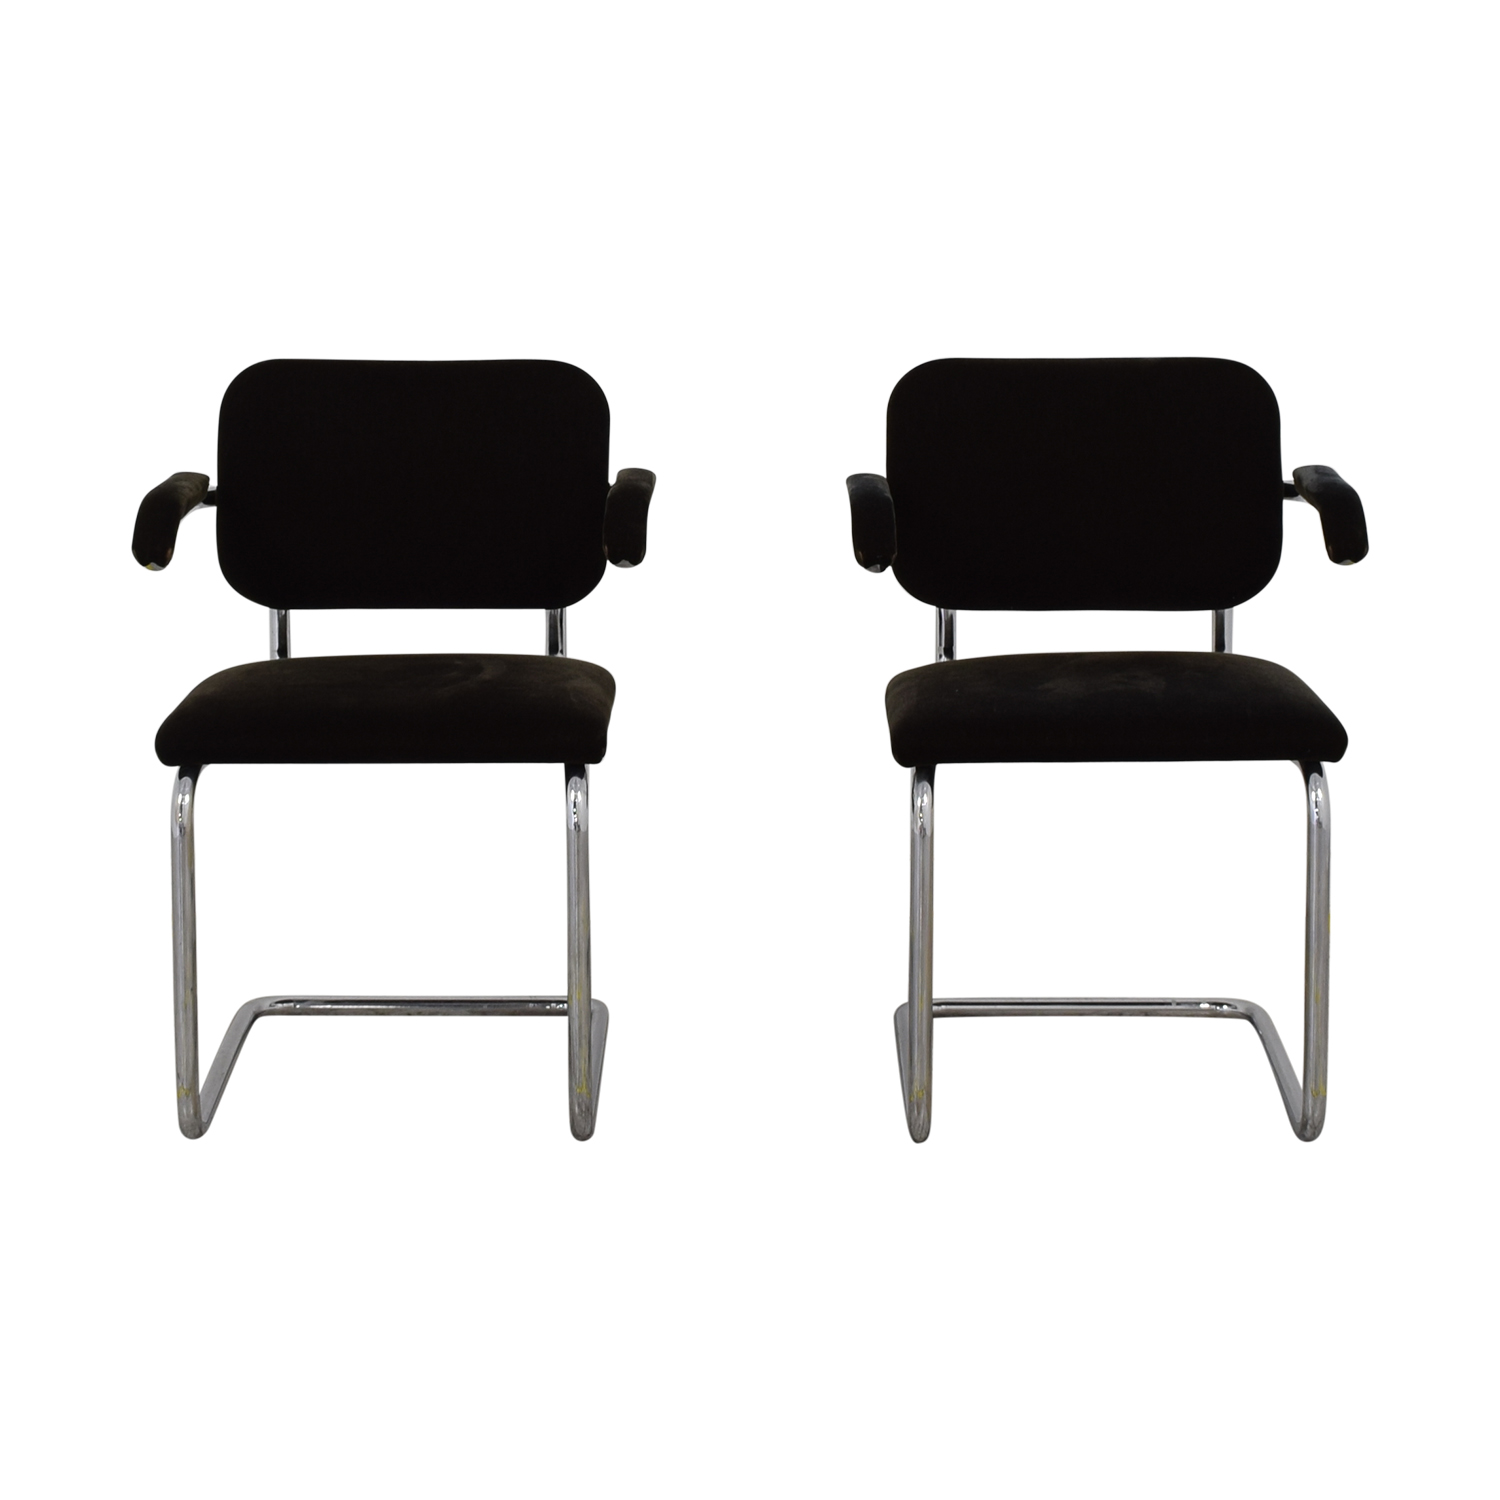 Knoll Marcel Breuer Cesca Chairs / Chairs